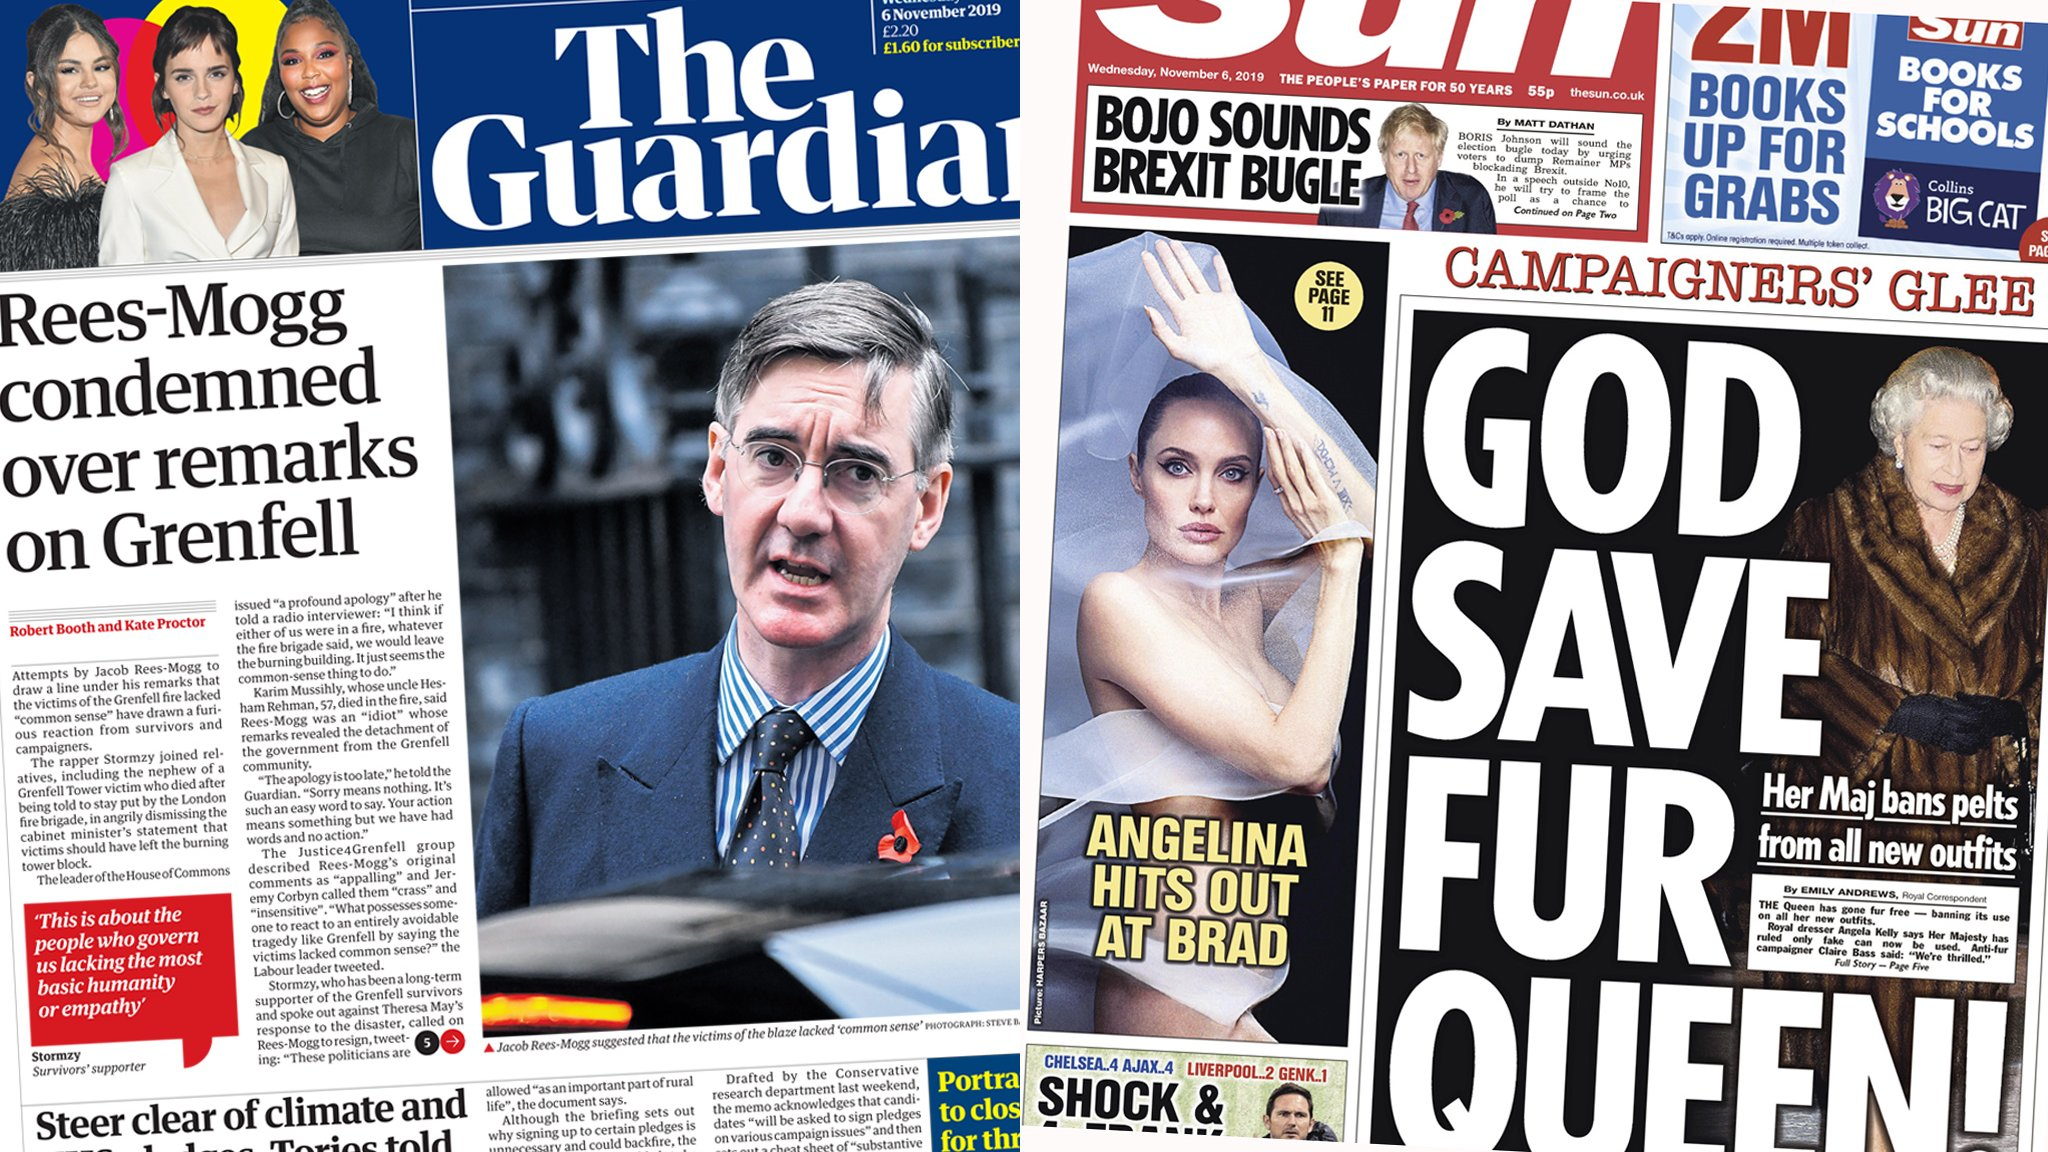 The Guardian and the Sun Wednesday